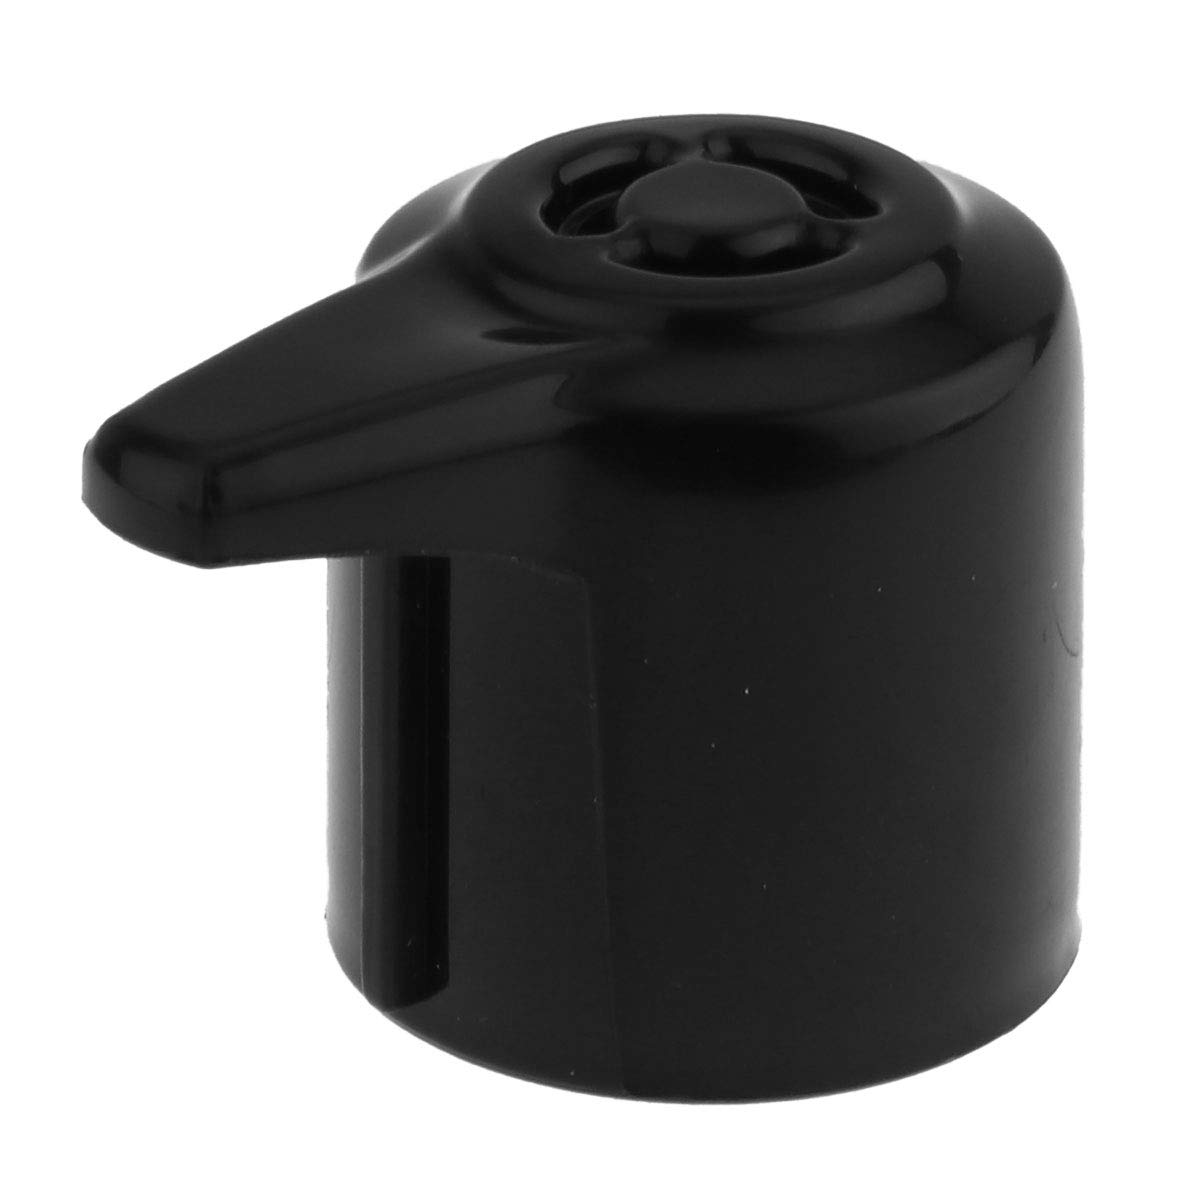 Freebily Steam Release Valve for Instant Pot Duo Mini 3 Qt Duo Plus Mini 3 Qt DUO60 6 Qt and DUO80 8 Qt Programmable Pressure Cooker Black One Size by Freebily (Image #1)